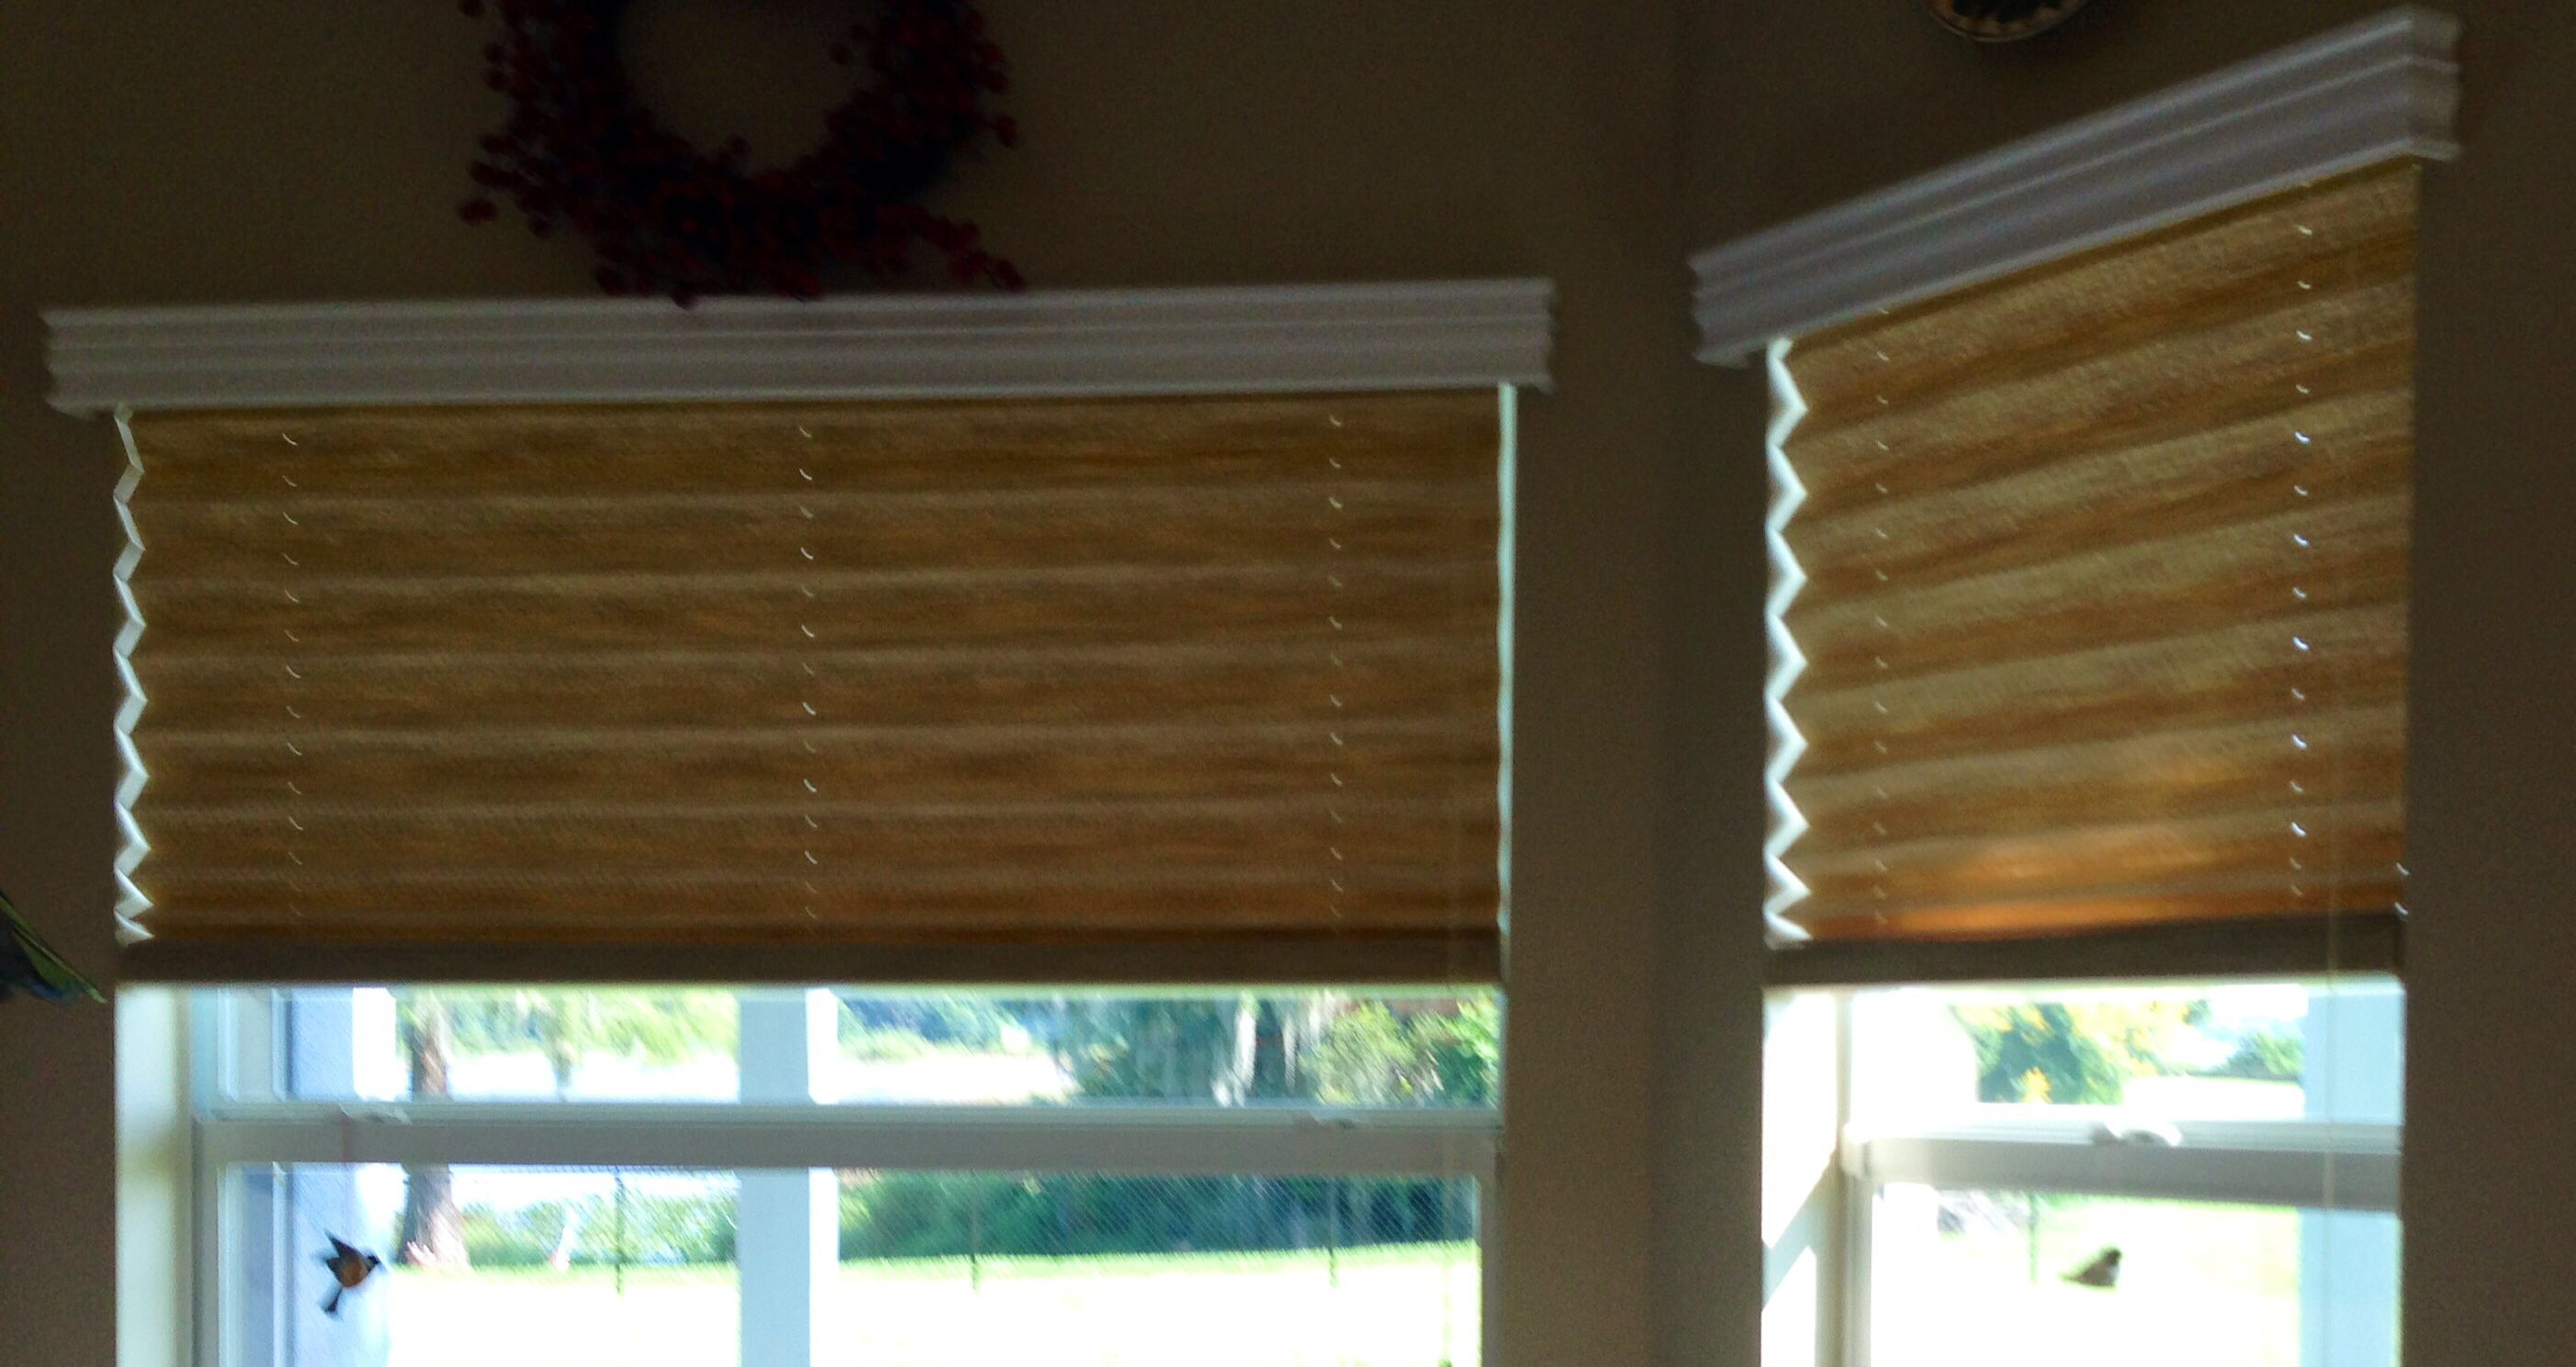 Signature Series Pleated Shades With Privacy Liner And Wood Valances Available At Budget Blinds